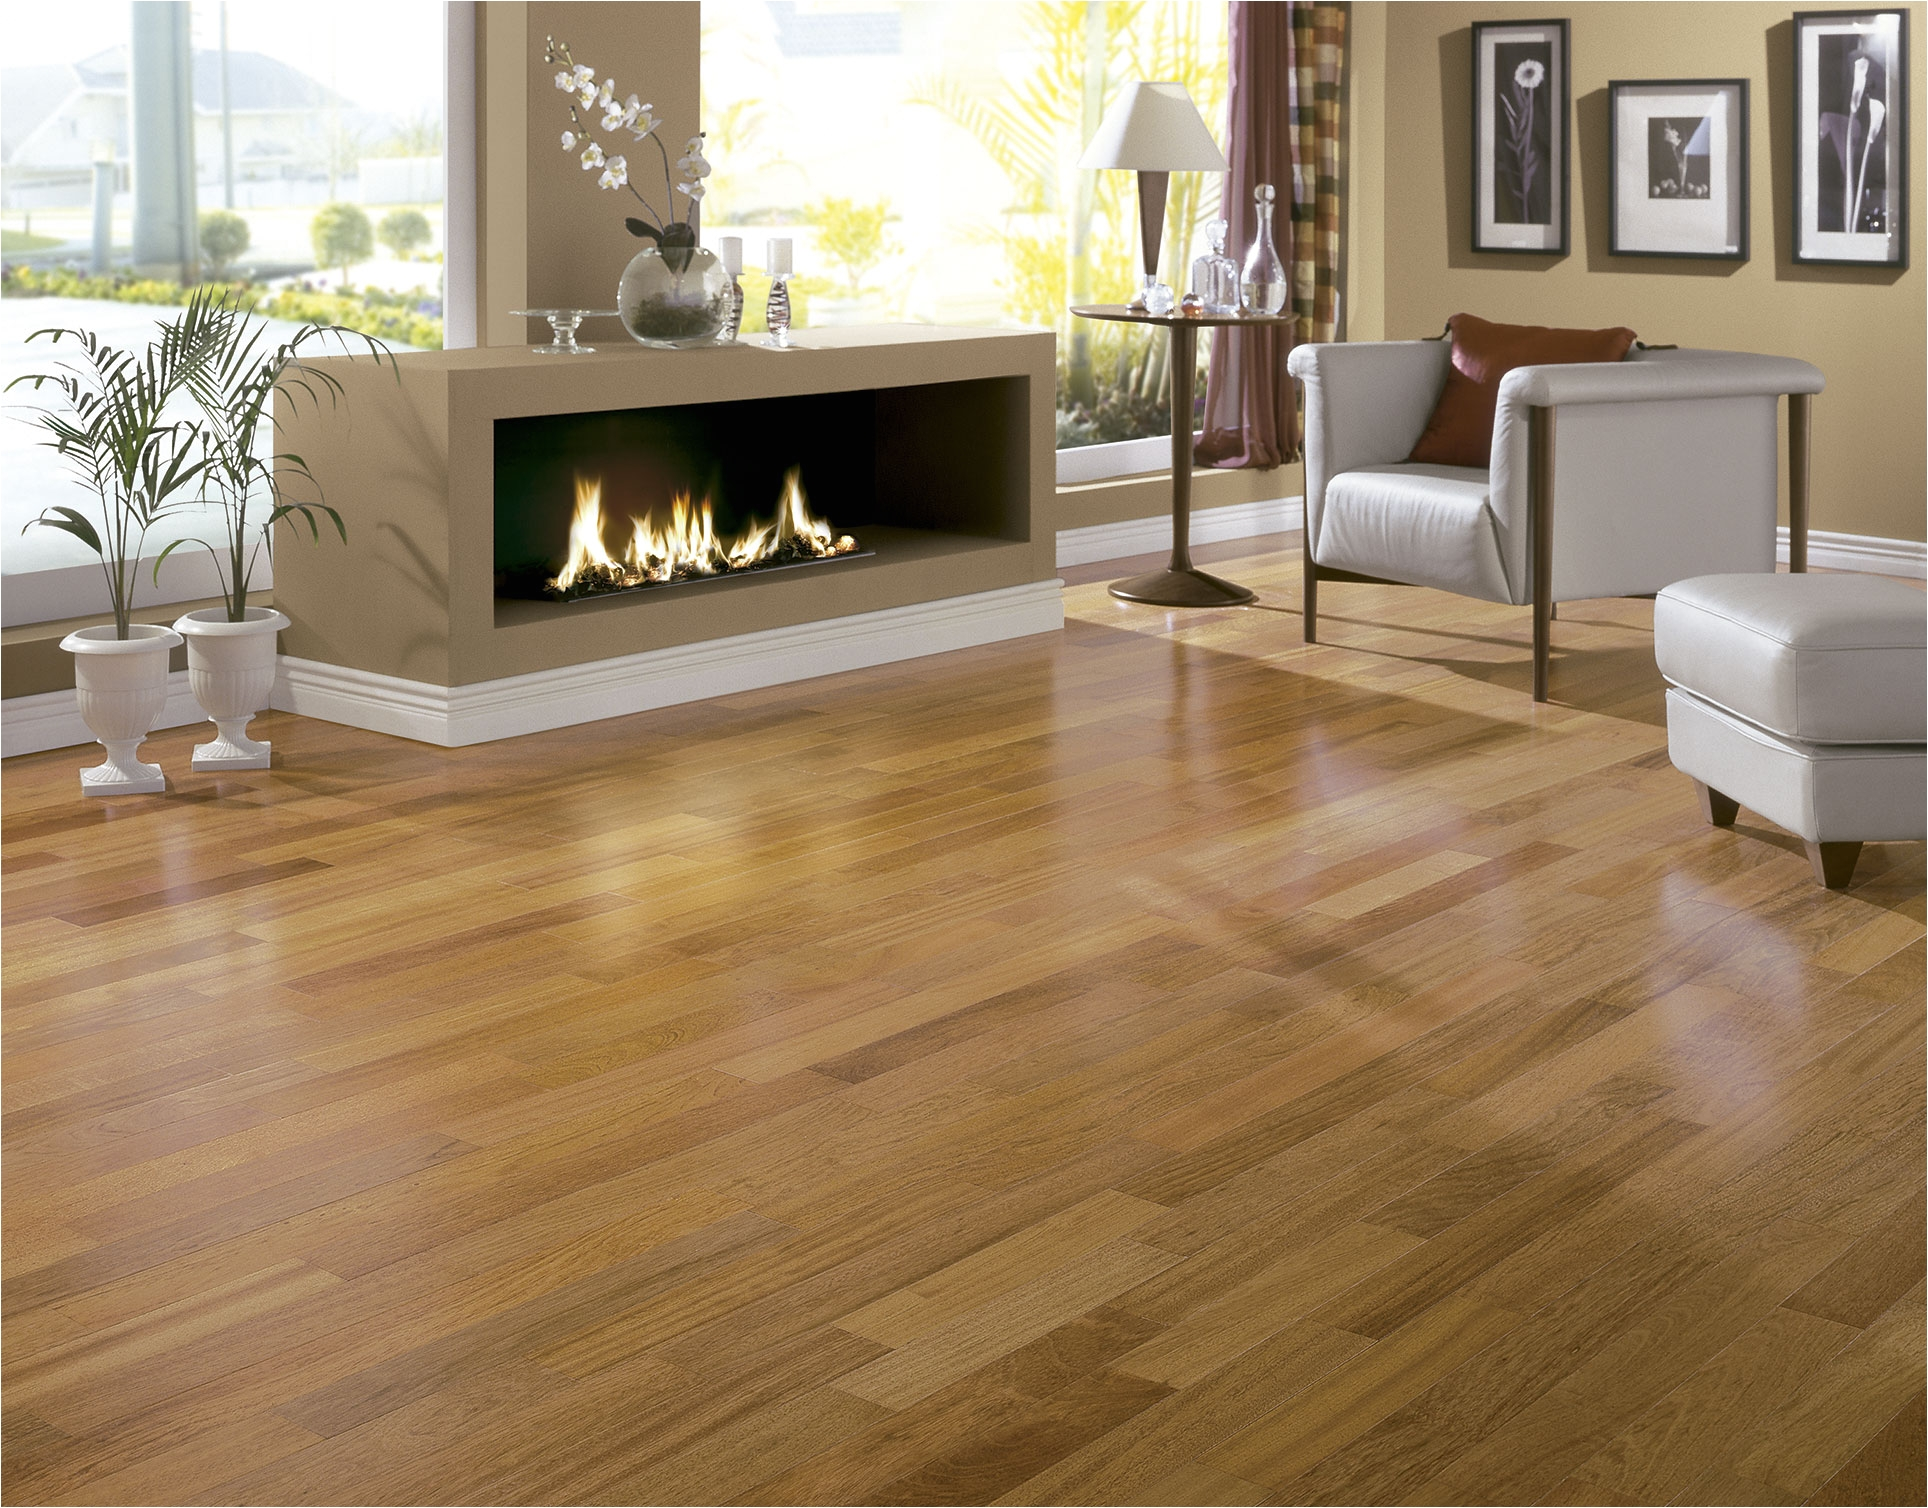 full size of bedroom cute discount hardwood flooring 6 brazilian cherry 1920x1508 discount hardwood flooring